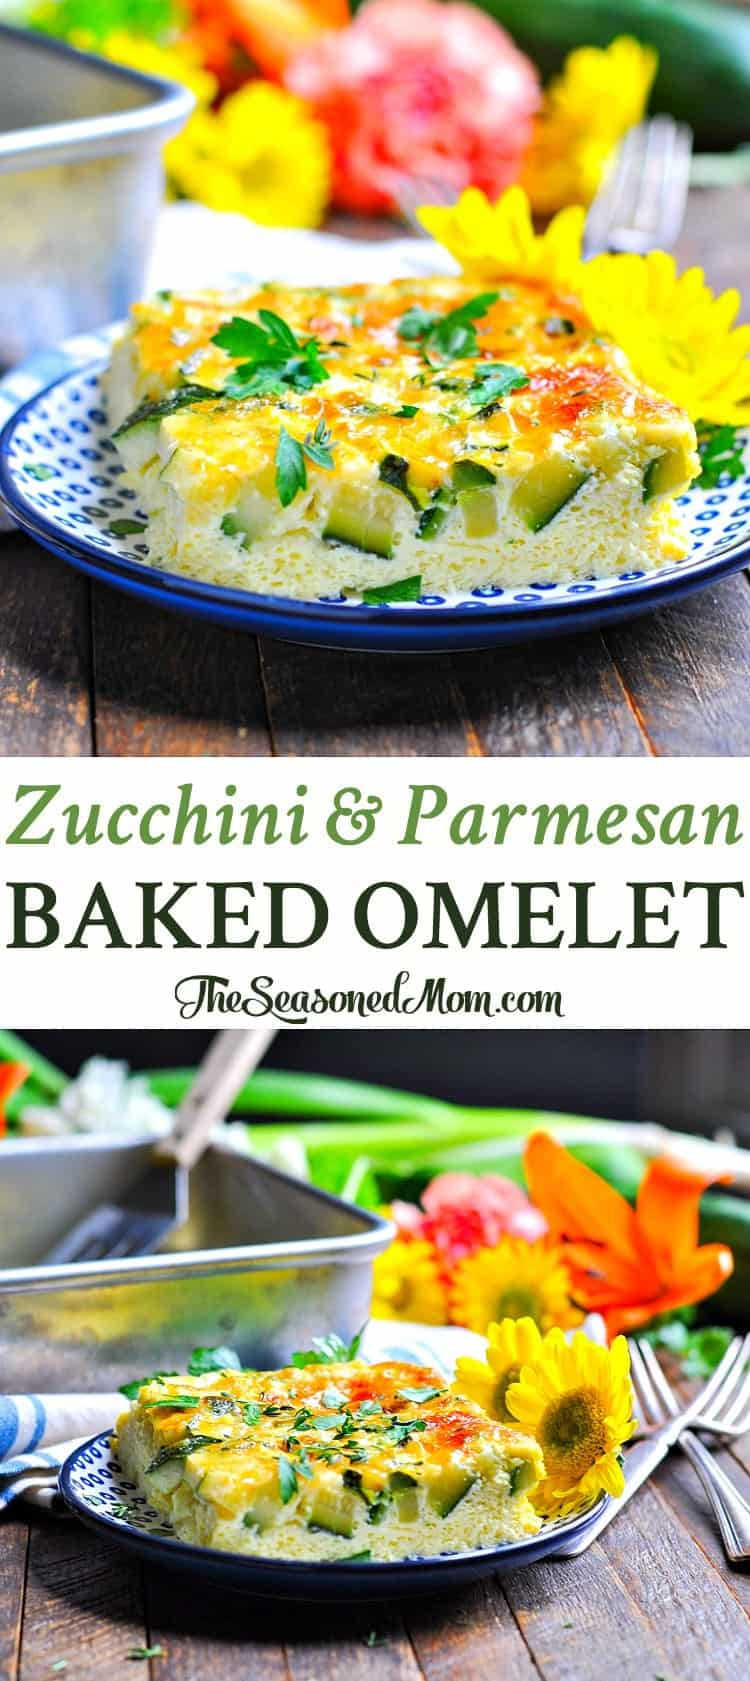 Zucchini and Parmesan Baked Omelet + Other Easy Zucchini Recipes | Healthy Breakfast Recipes | Healthy Brunch Recipes | Dinner Ideas | Healthy Dinner Recipes | Breakfast Casserole | Egg Recipes | Vegetarian Recipes | Vegetarian Meals | Breakfast Ideas